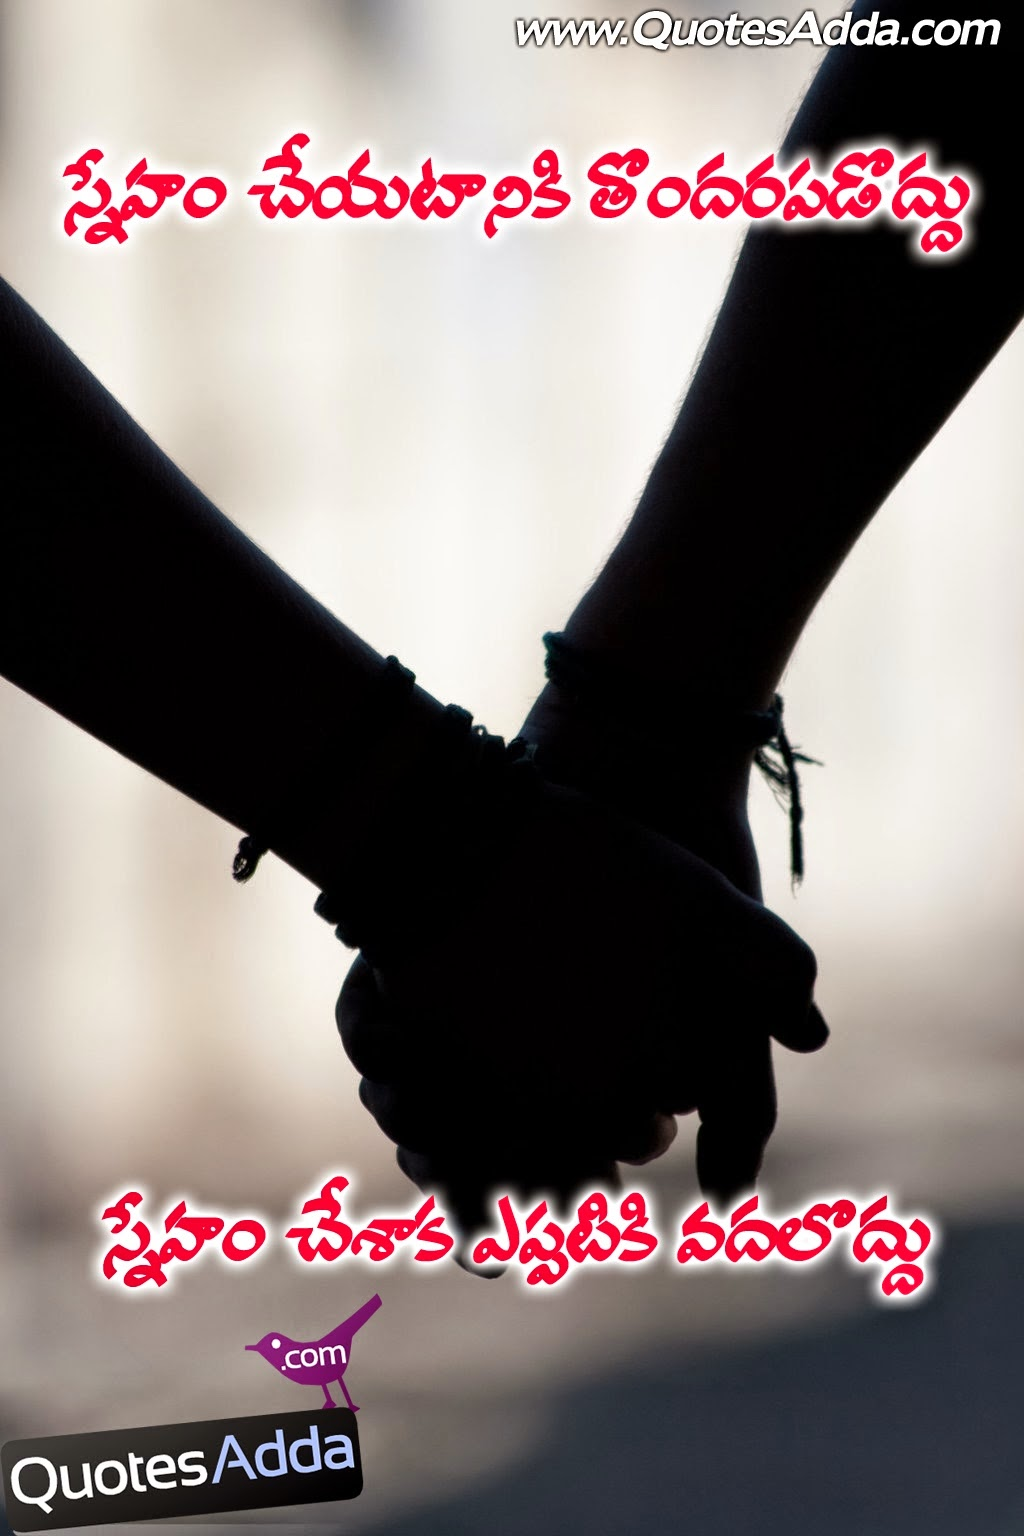 Telugu Friendship day SMS 2014